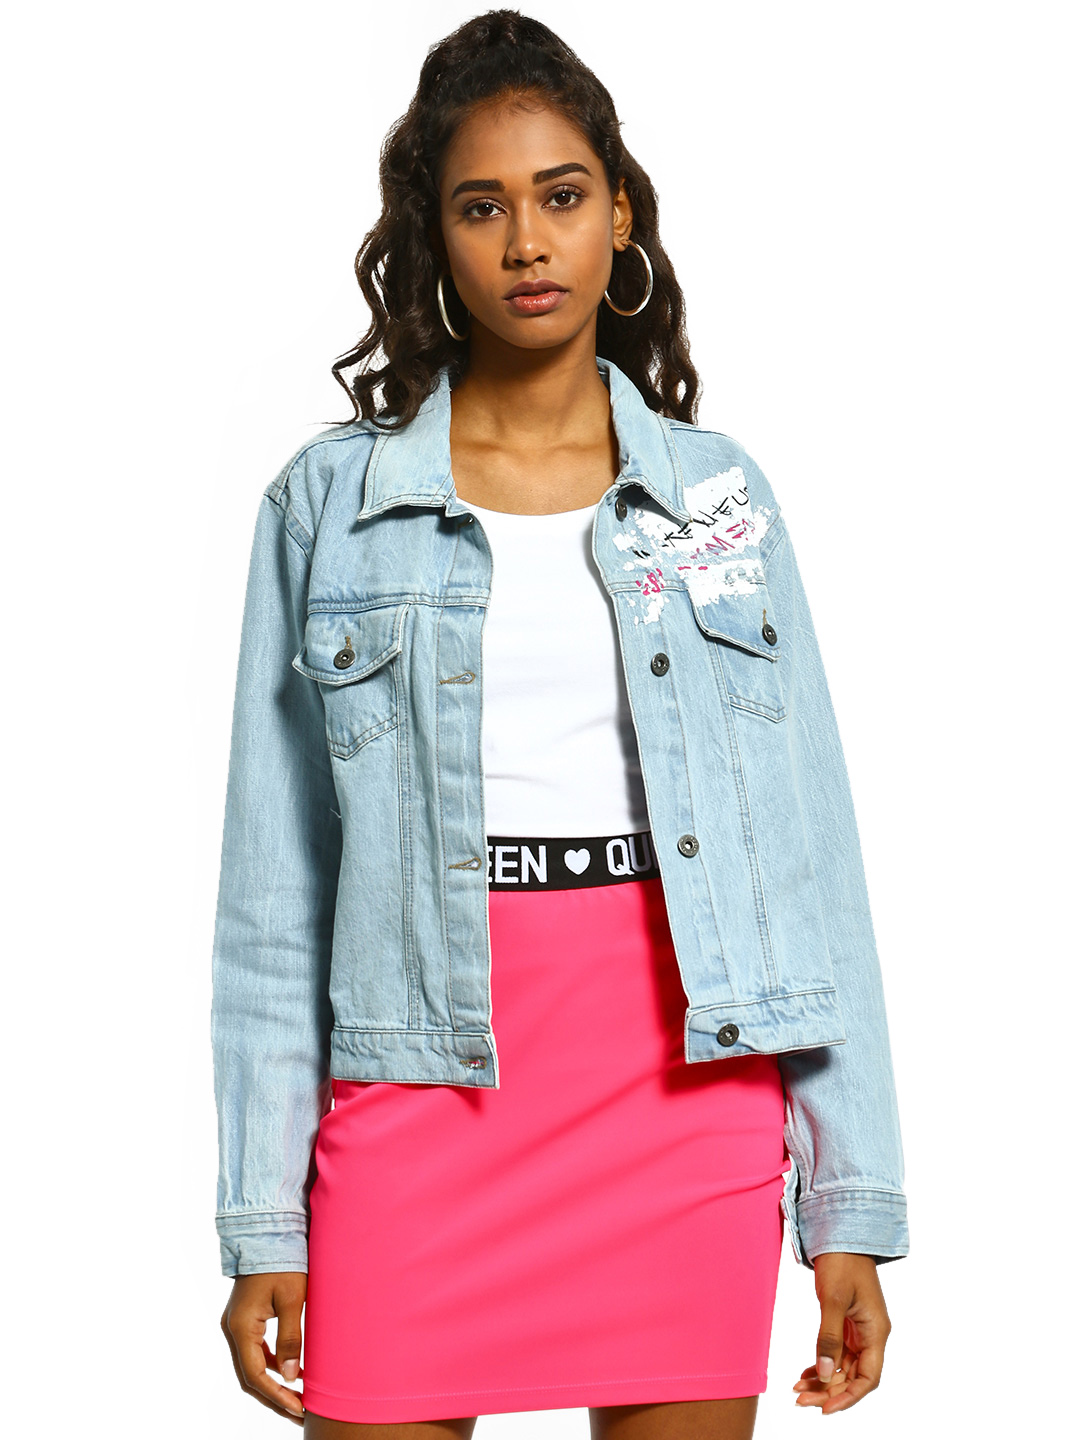 K Denim Blue KOOVS Light-Wash Graffiti Print Denim Jacket 1